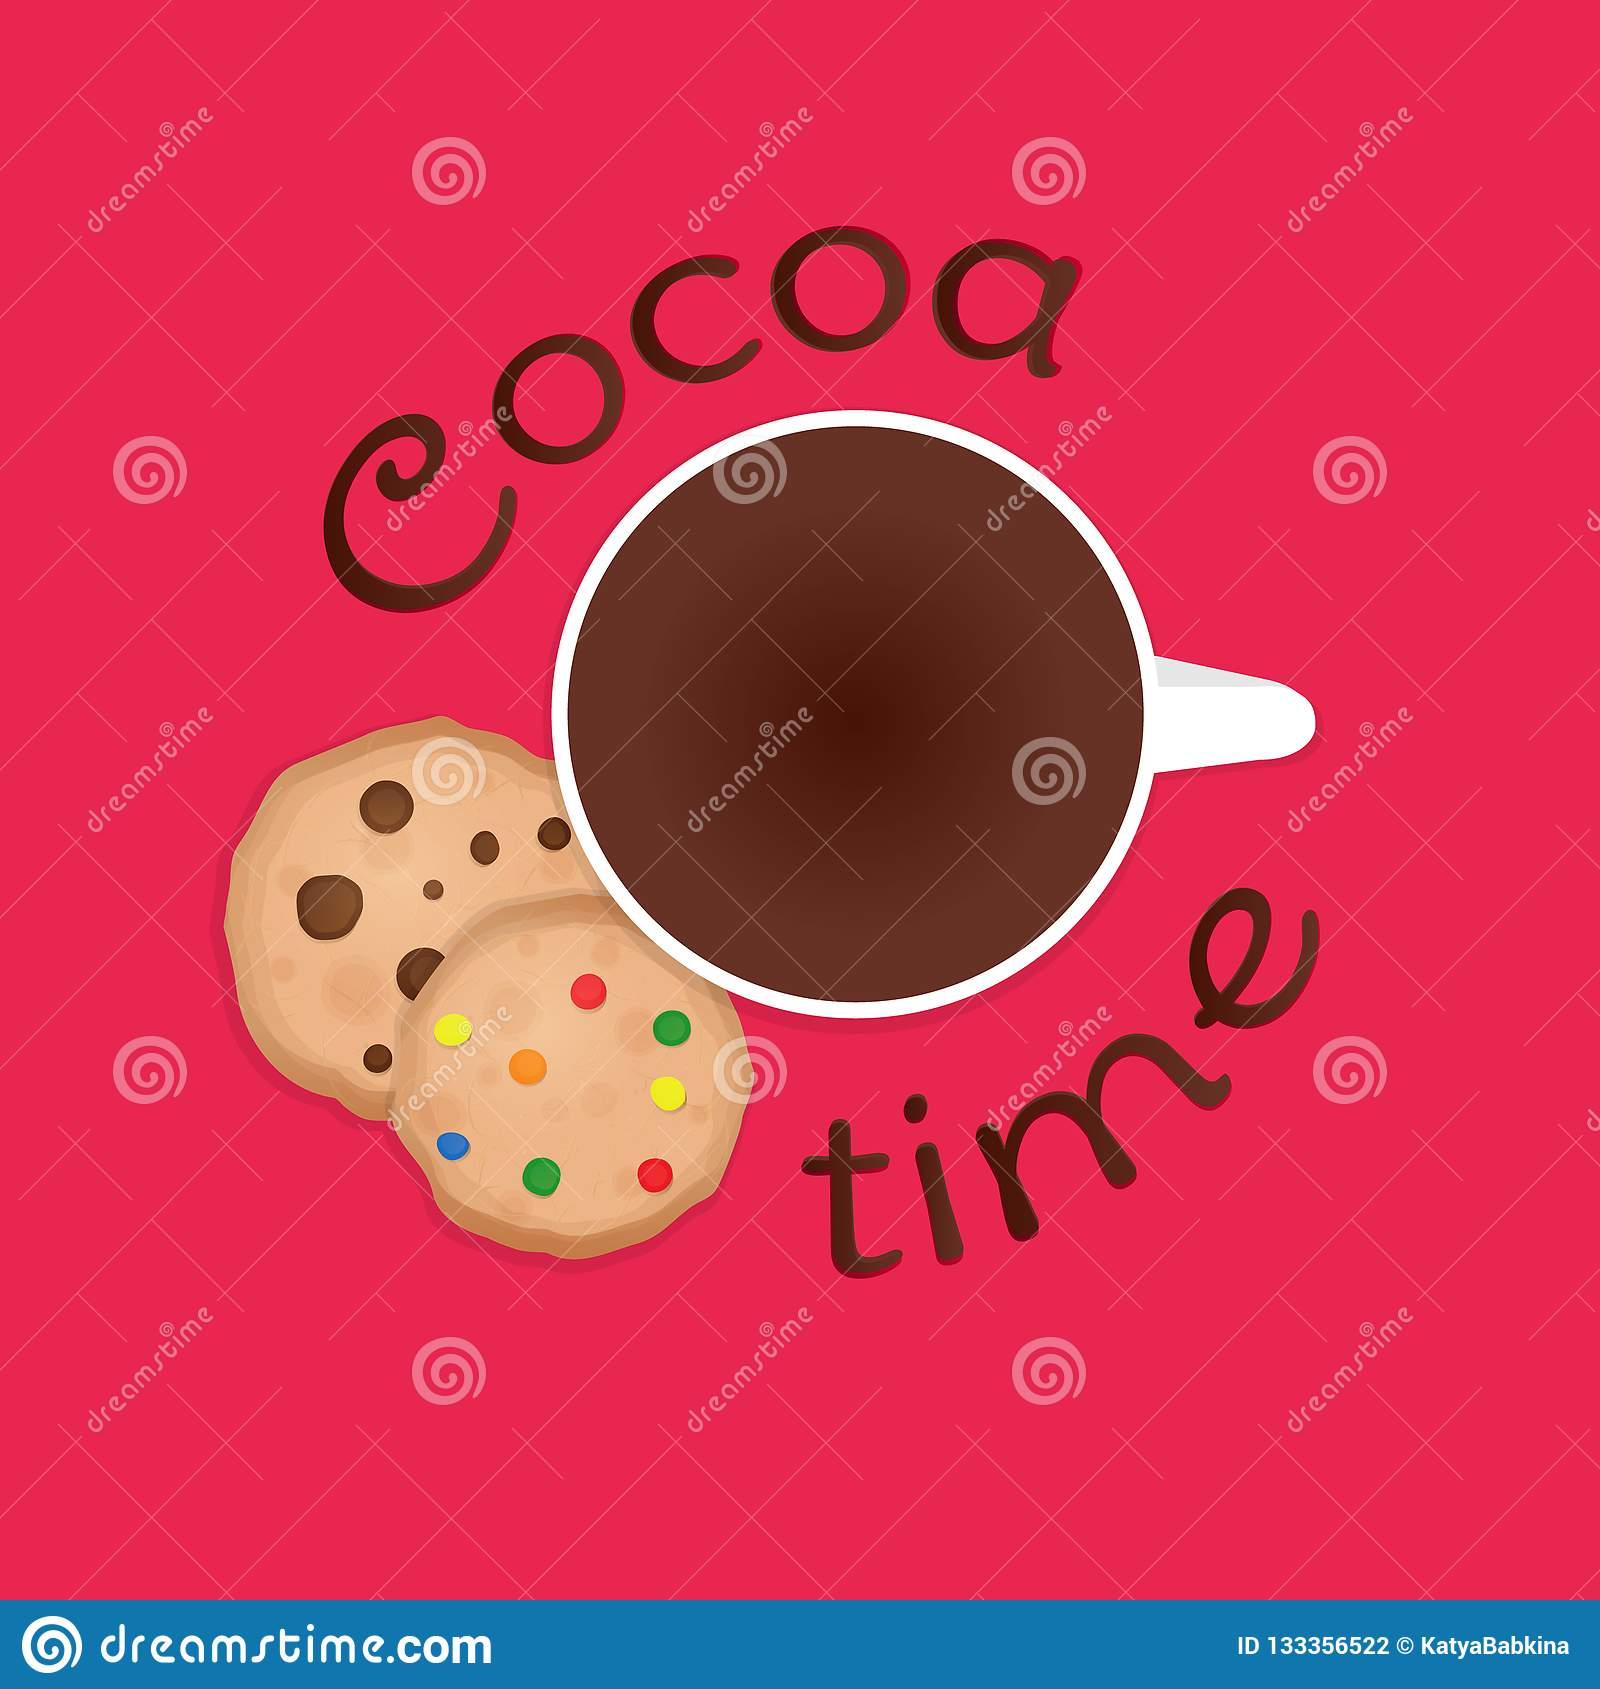 Cozy vector illustration with cup, cookies and text `cocoa time`on pink background.